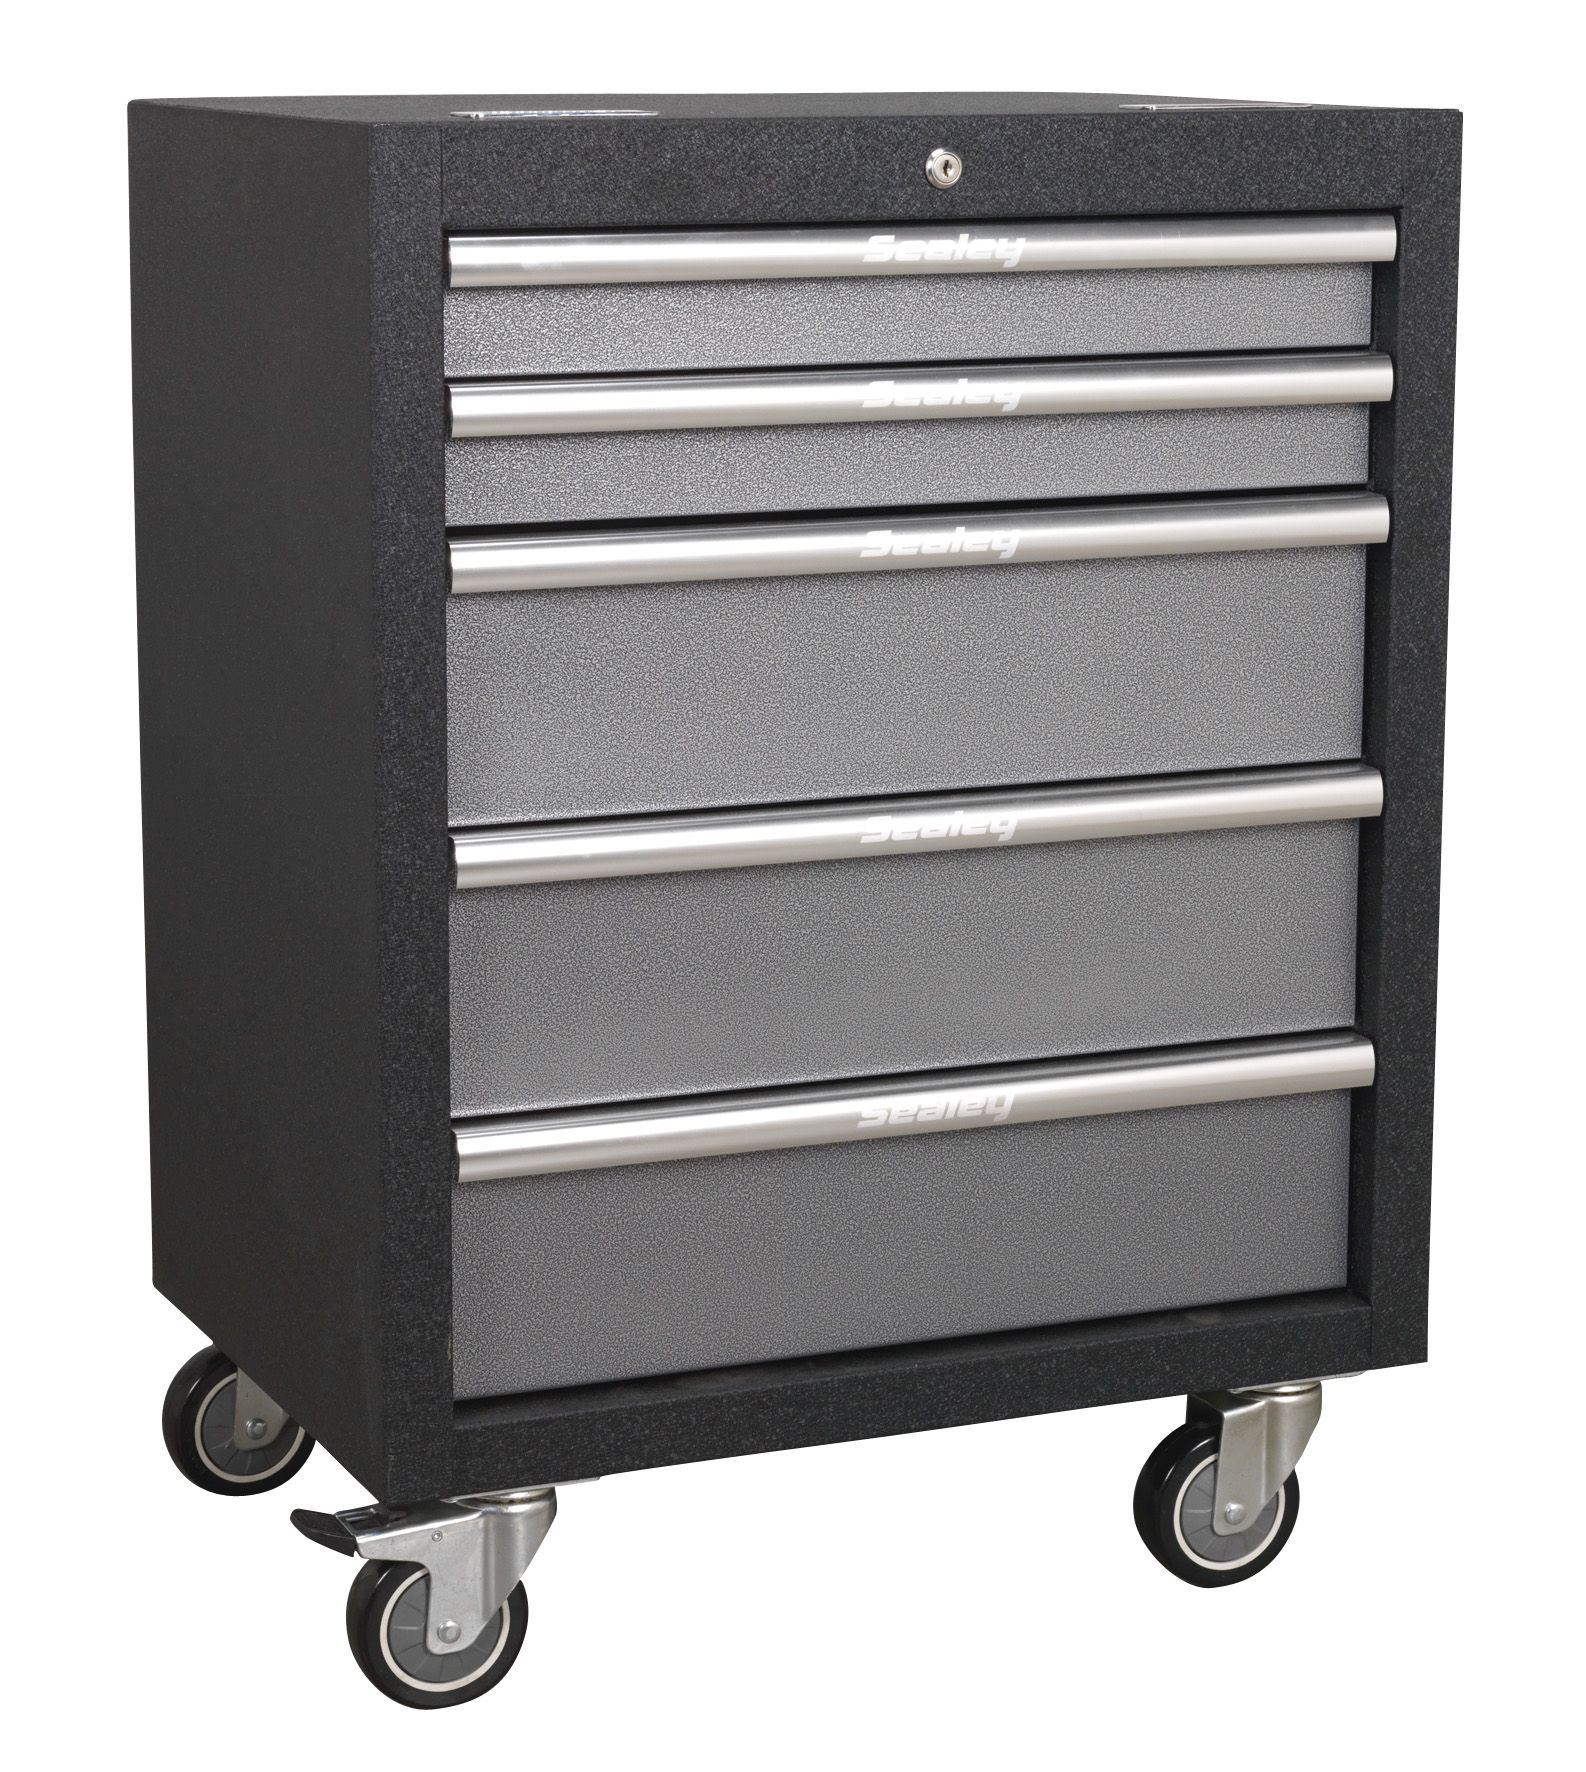 Sealey Superline Pro Modular 5 Drawer Mobile Cabinet 650mm